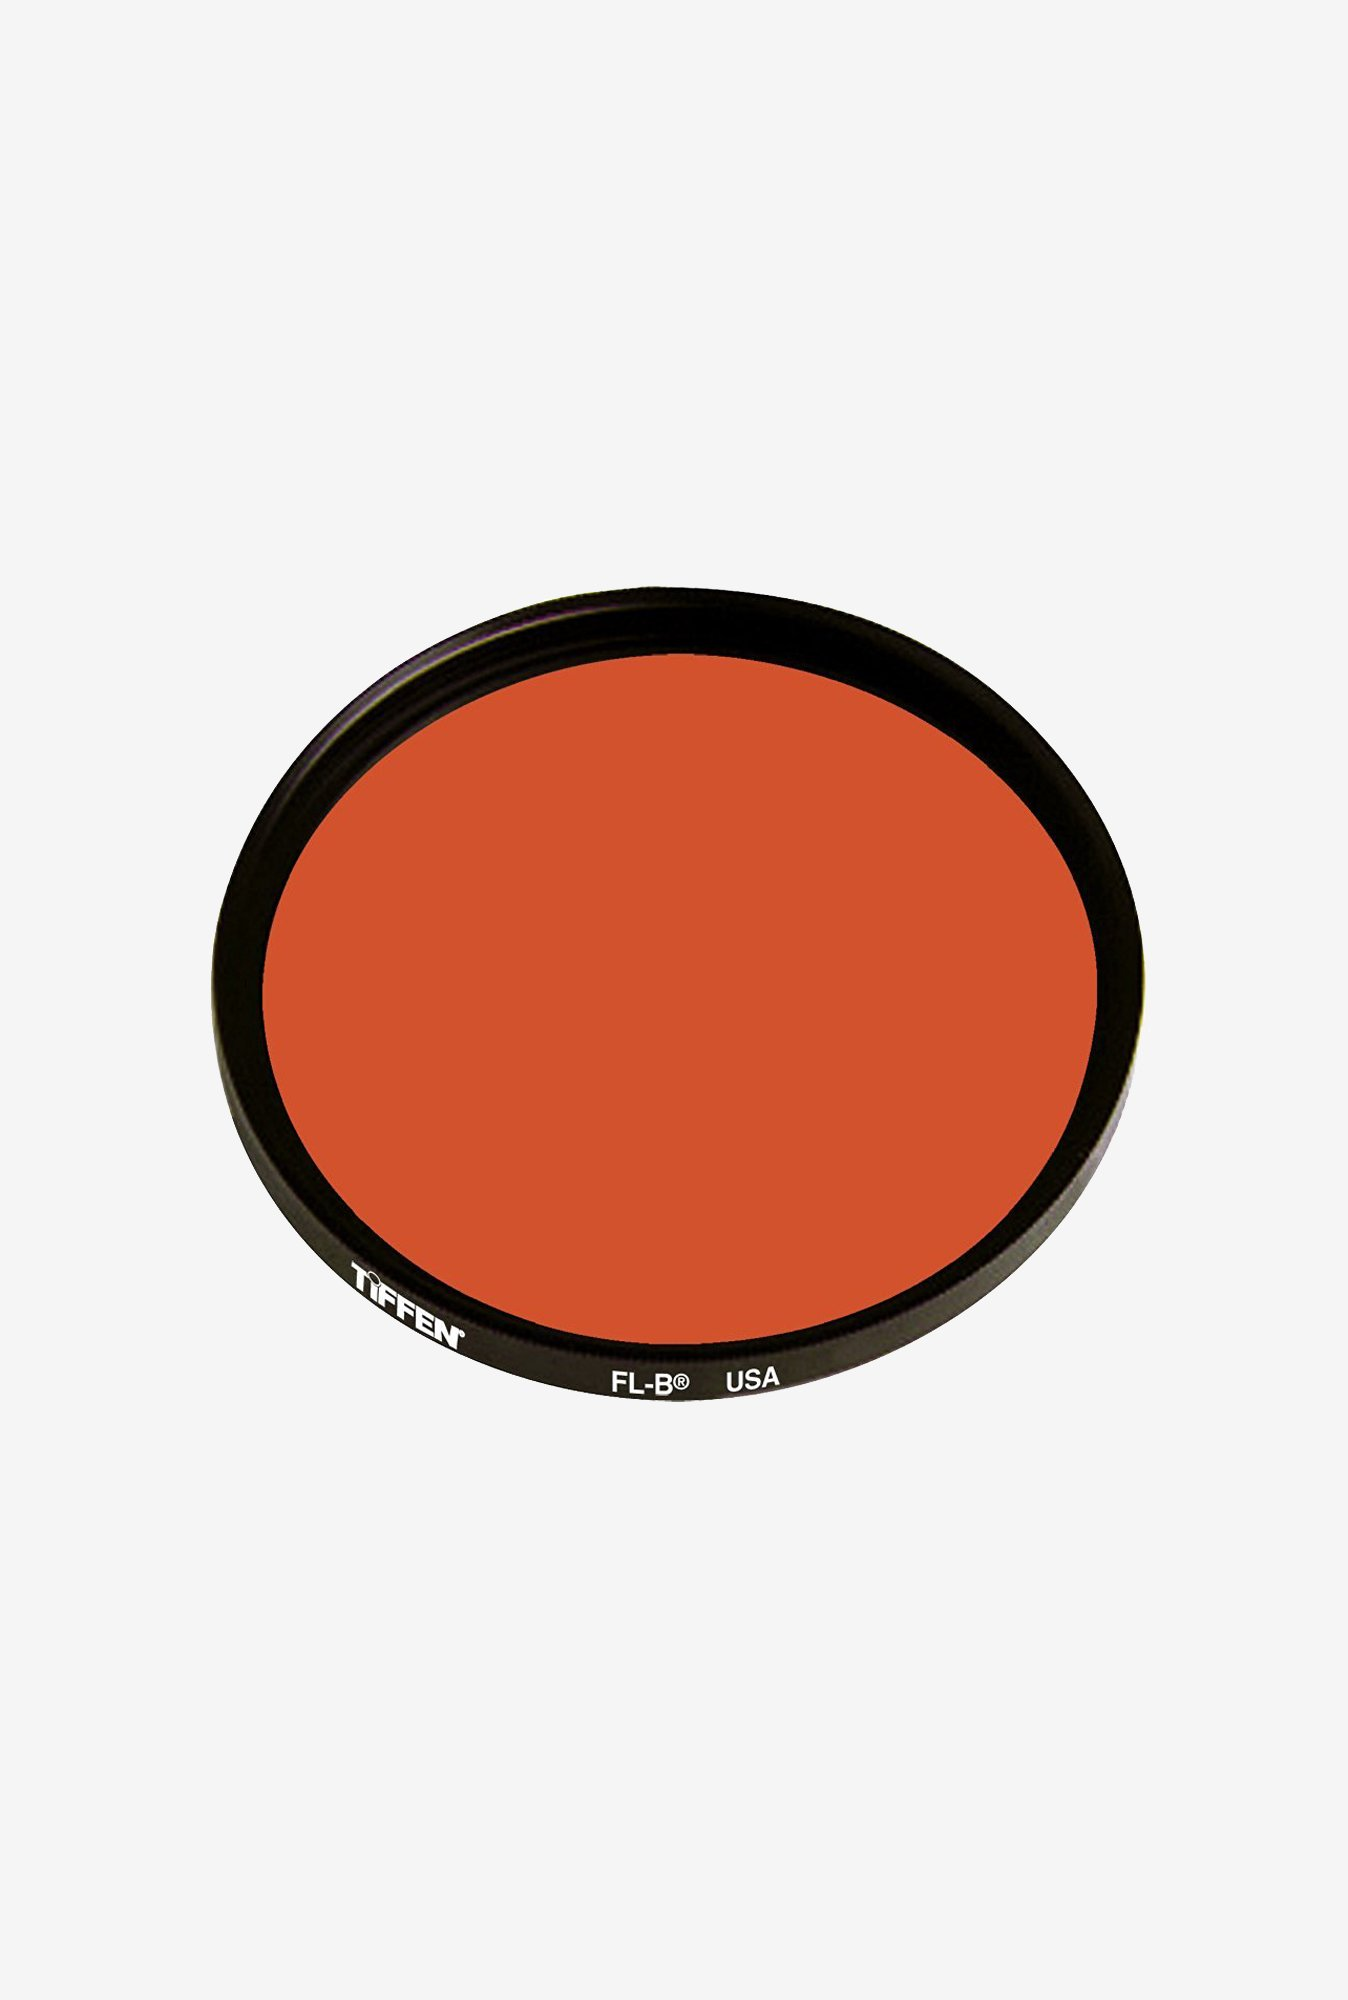 Tiffen 55FLB 55mm FLB Filter (Orange)